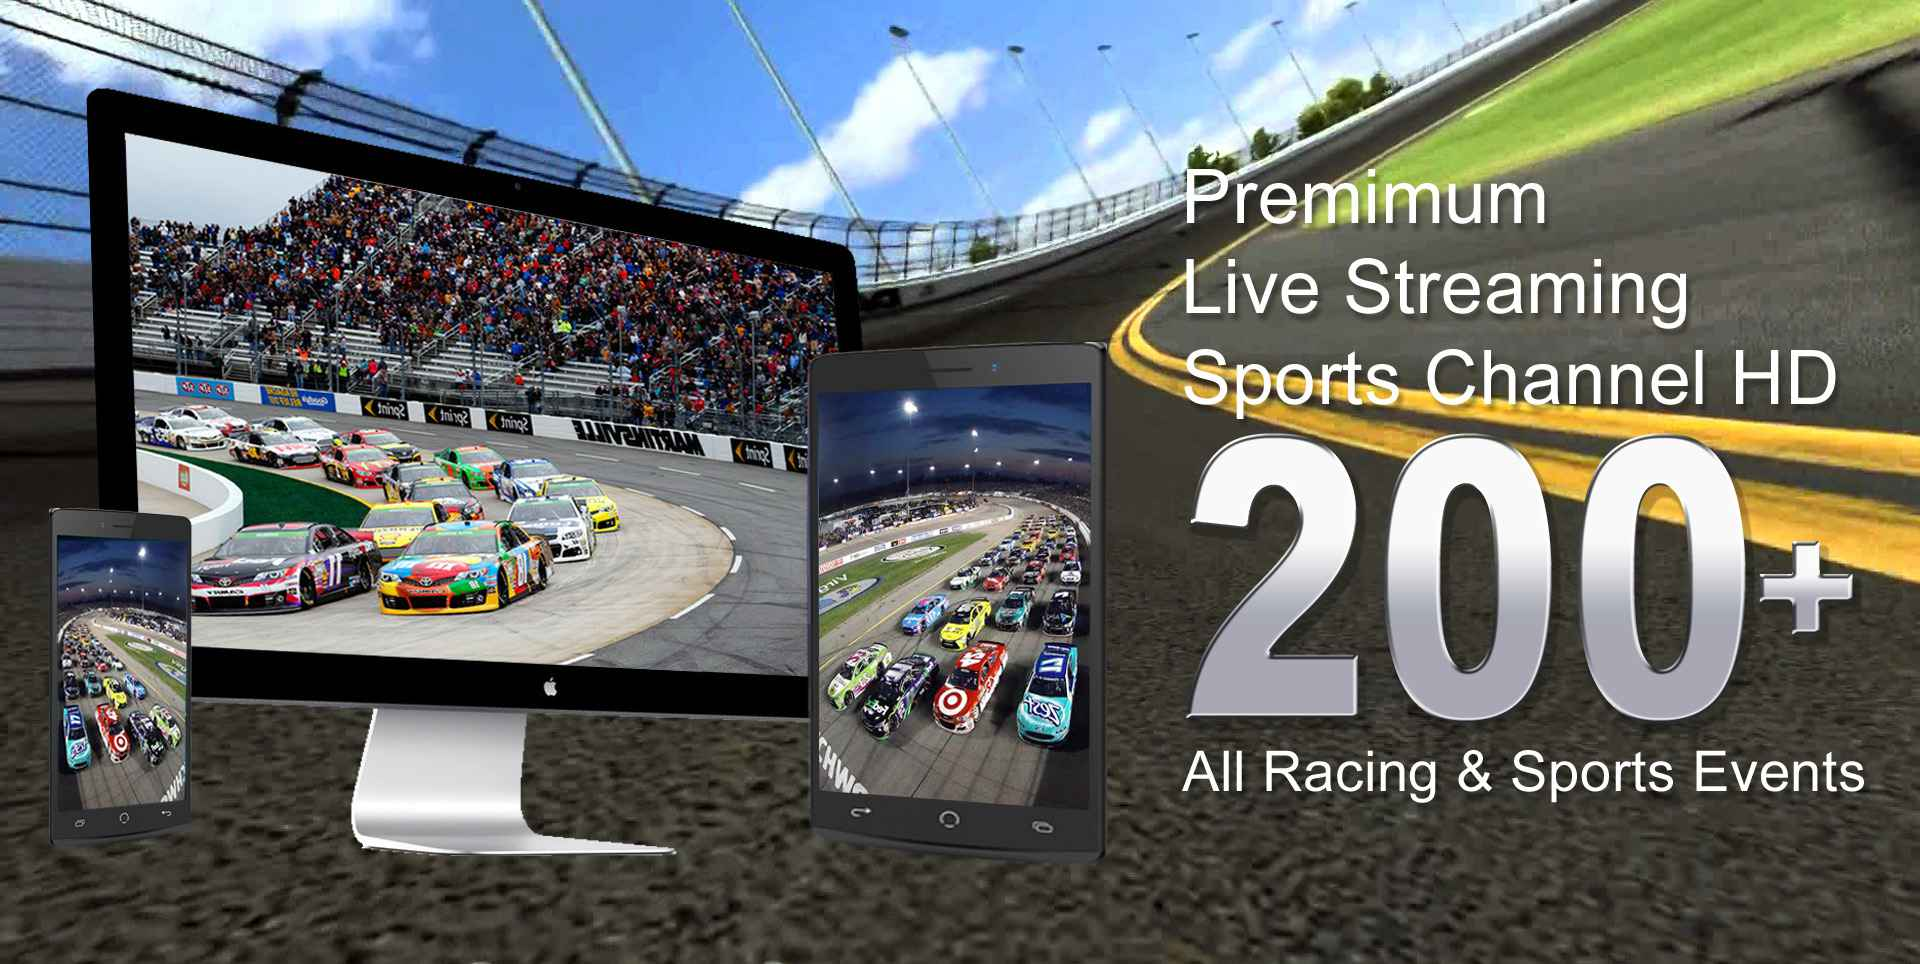 2017-monster-energy-nascar-aaa-400-drive-for-autism-race-results